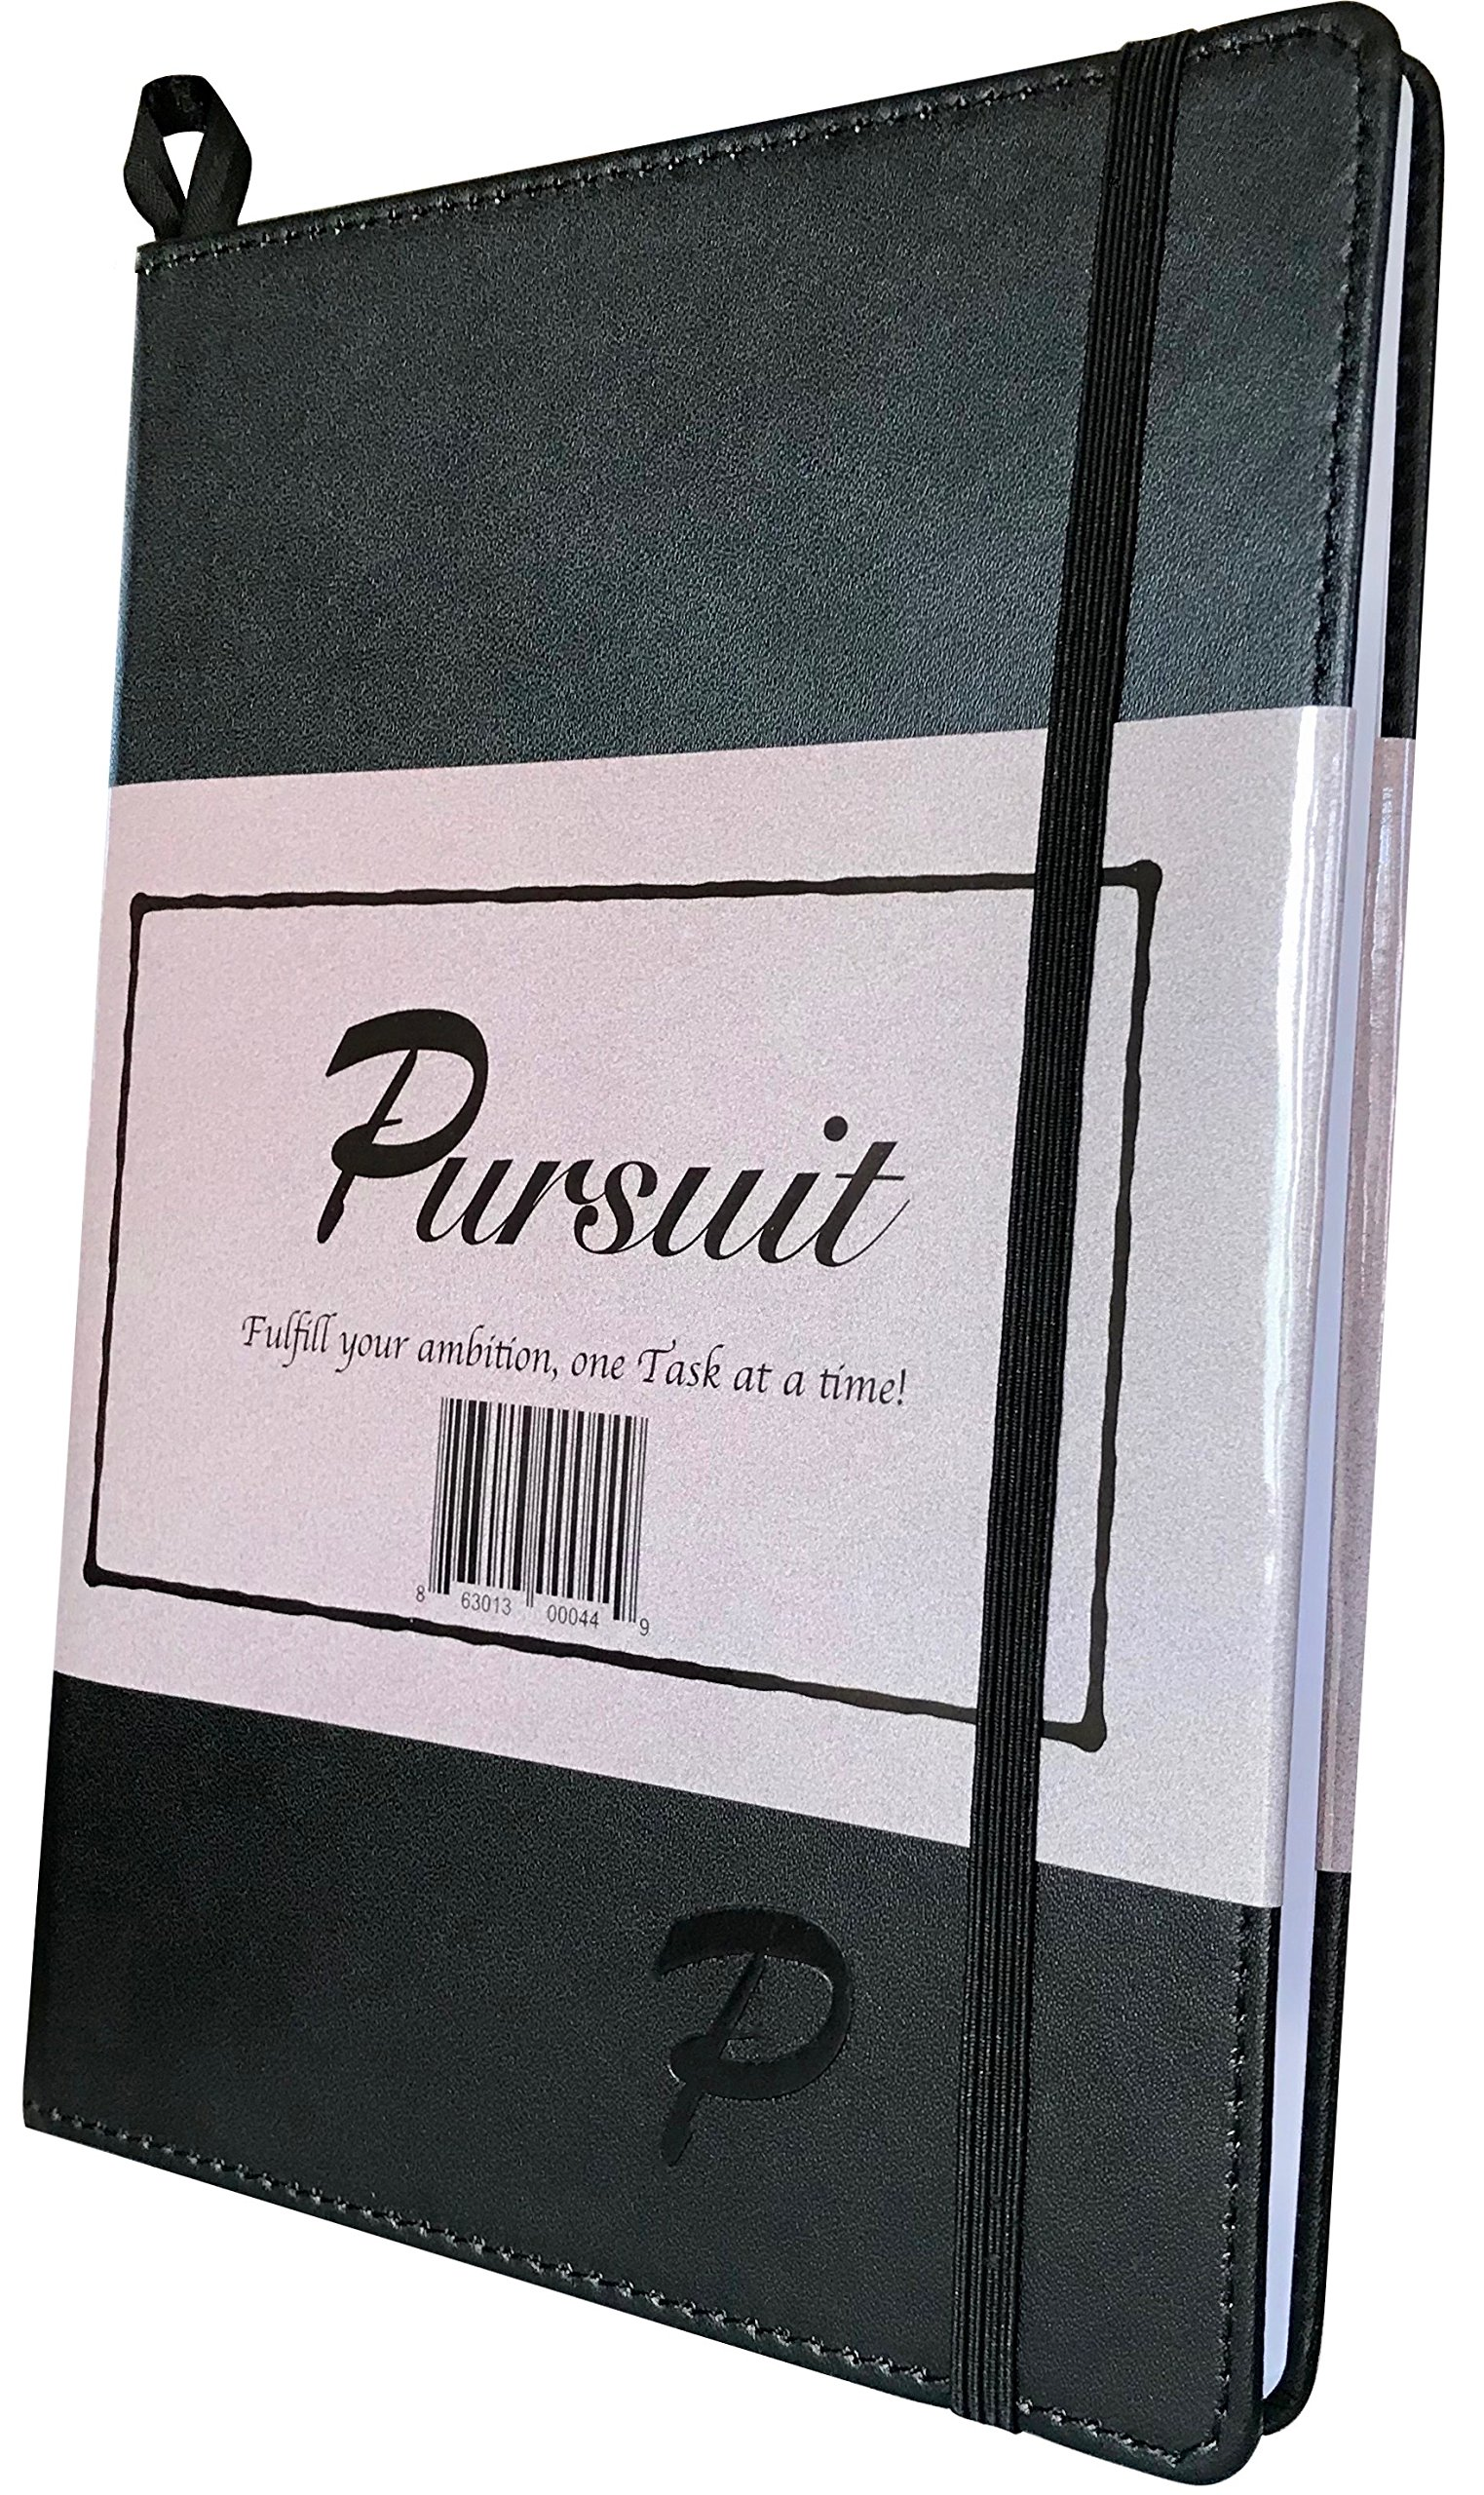 Pursuit Goal Journal - A Unique, Down-to-Earth Method for Productivity, Motivation, Mindfulness, and Goal Planning.